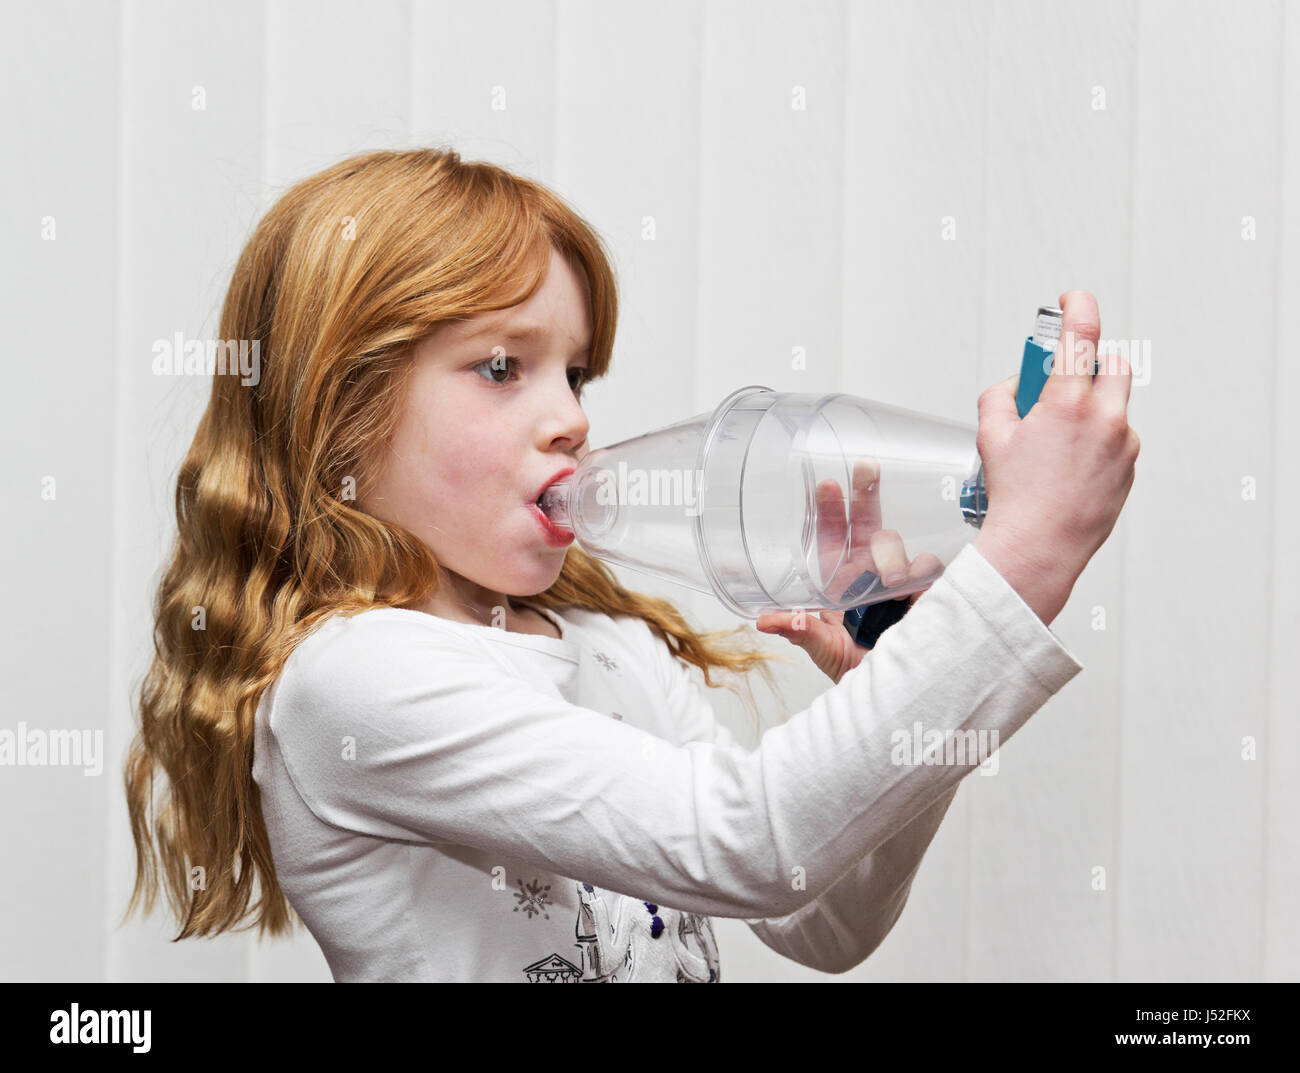 A seven year old girl using a Ventolin inhaler with a volumatic spacer device for asthma relief. - Stock Image